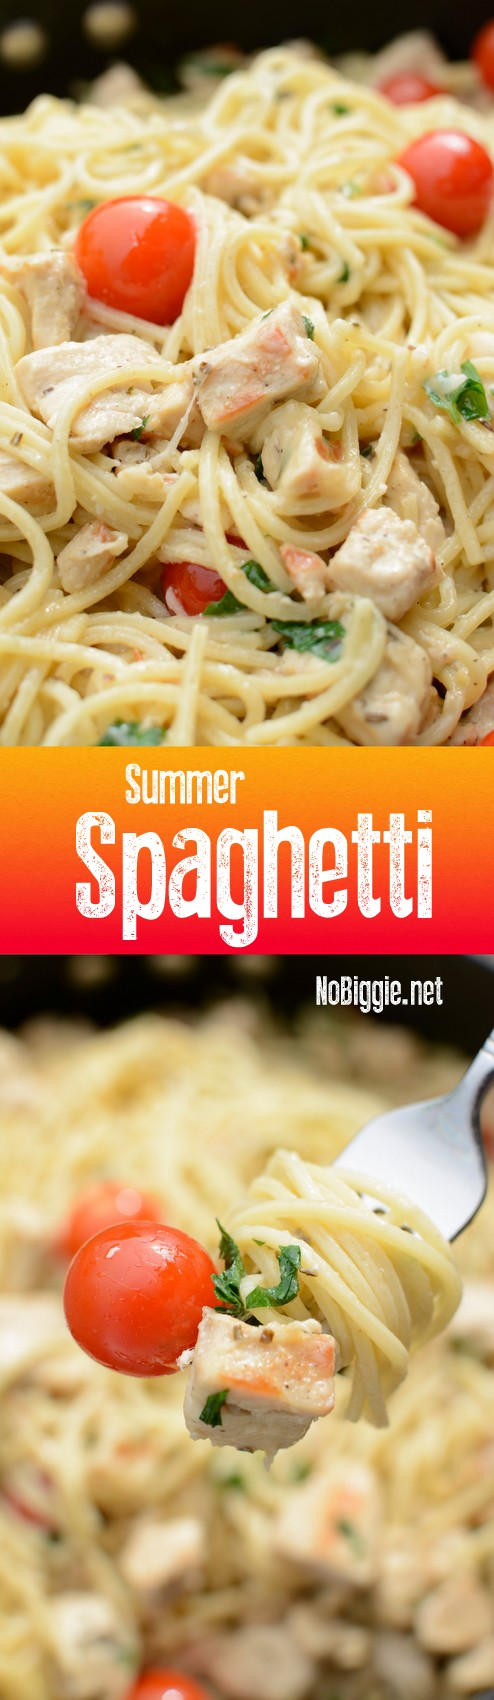 http://www.nobiggie.net/wp-content/uploads/2016/05/Summer-Spaghetti-with-garlic-gravy-this-sauce-is-amazing.jpg